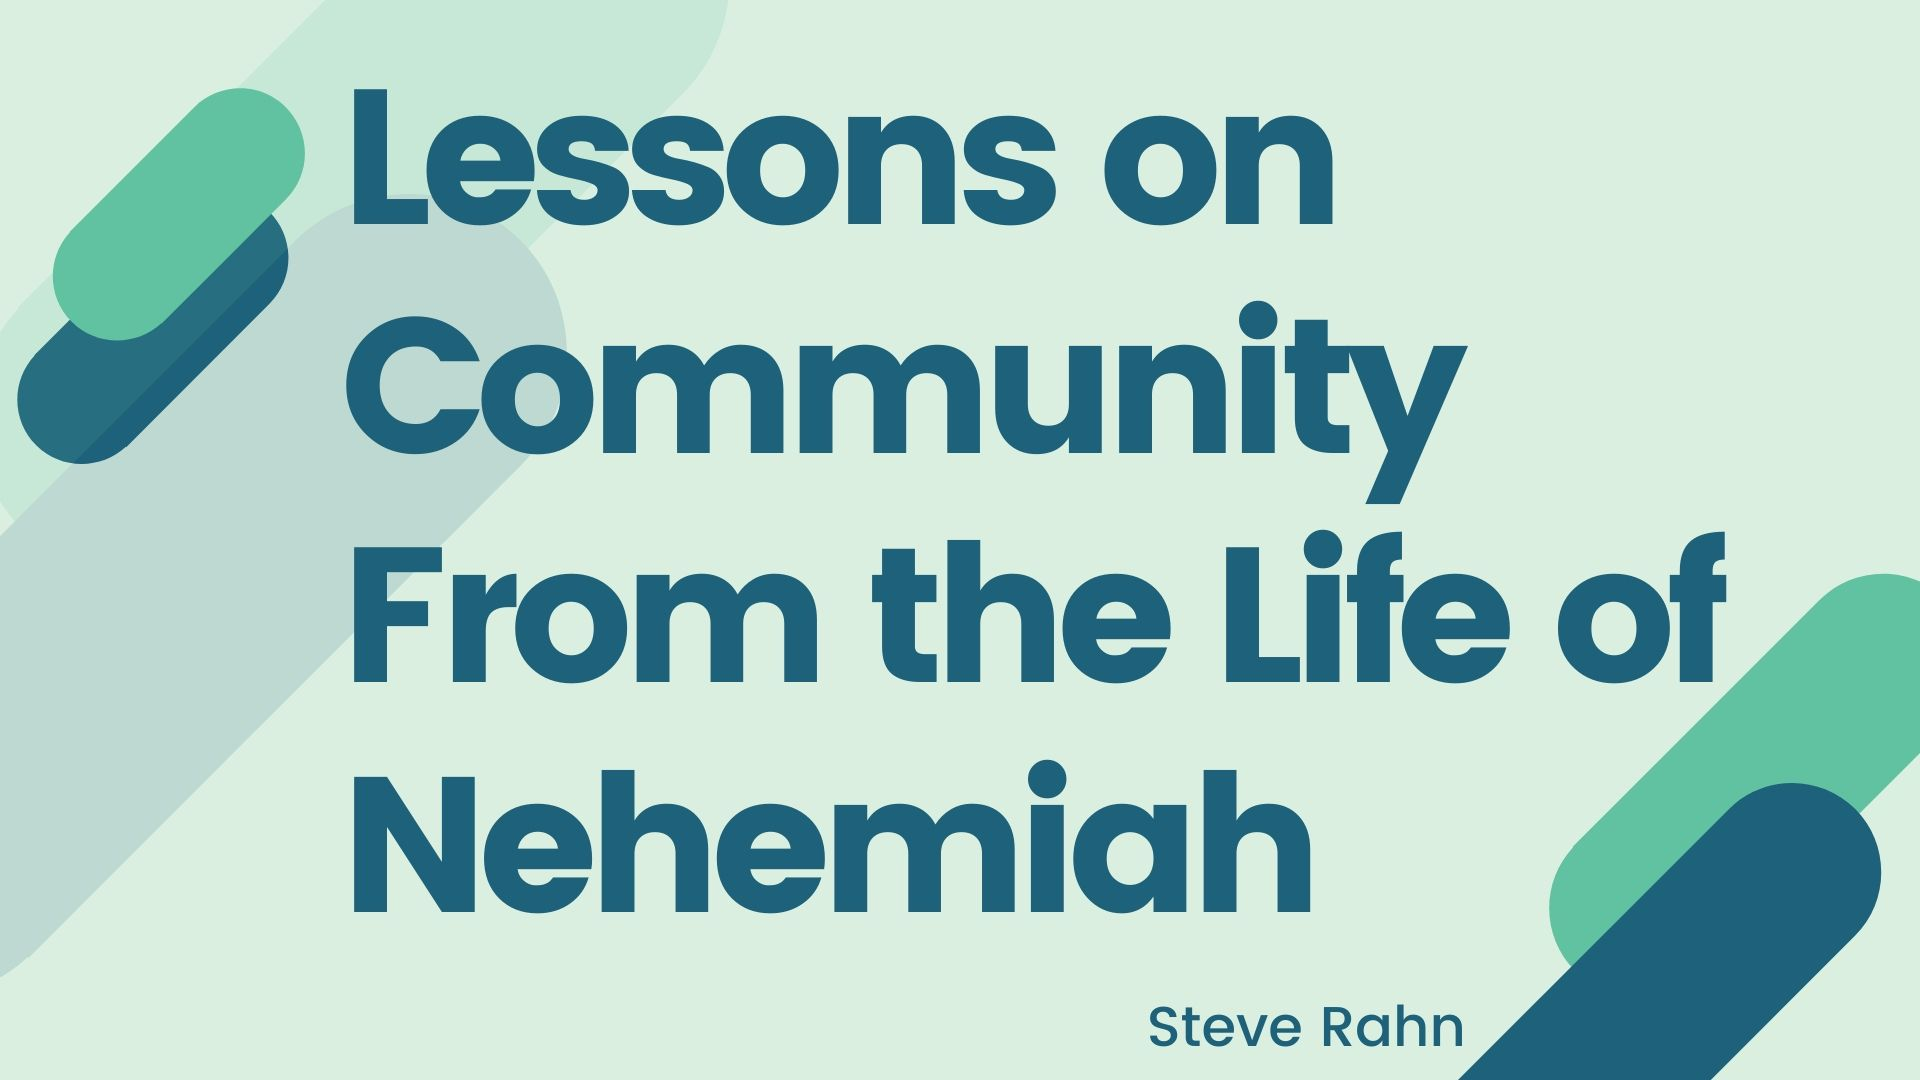 Lessons on Community from the life of Nehemiah